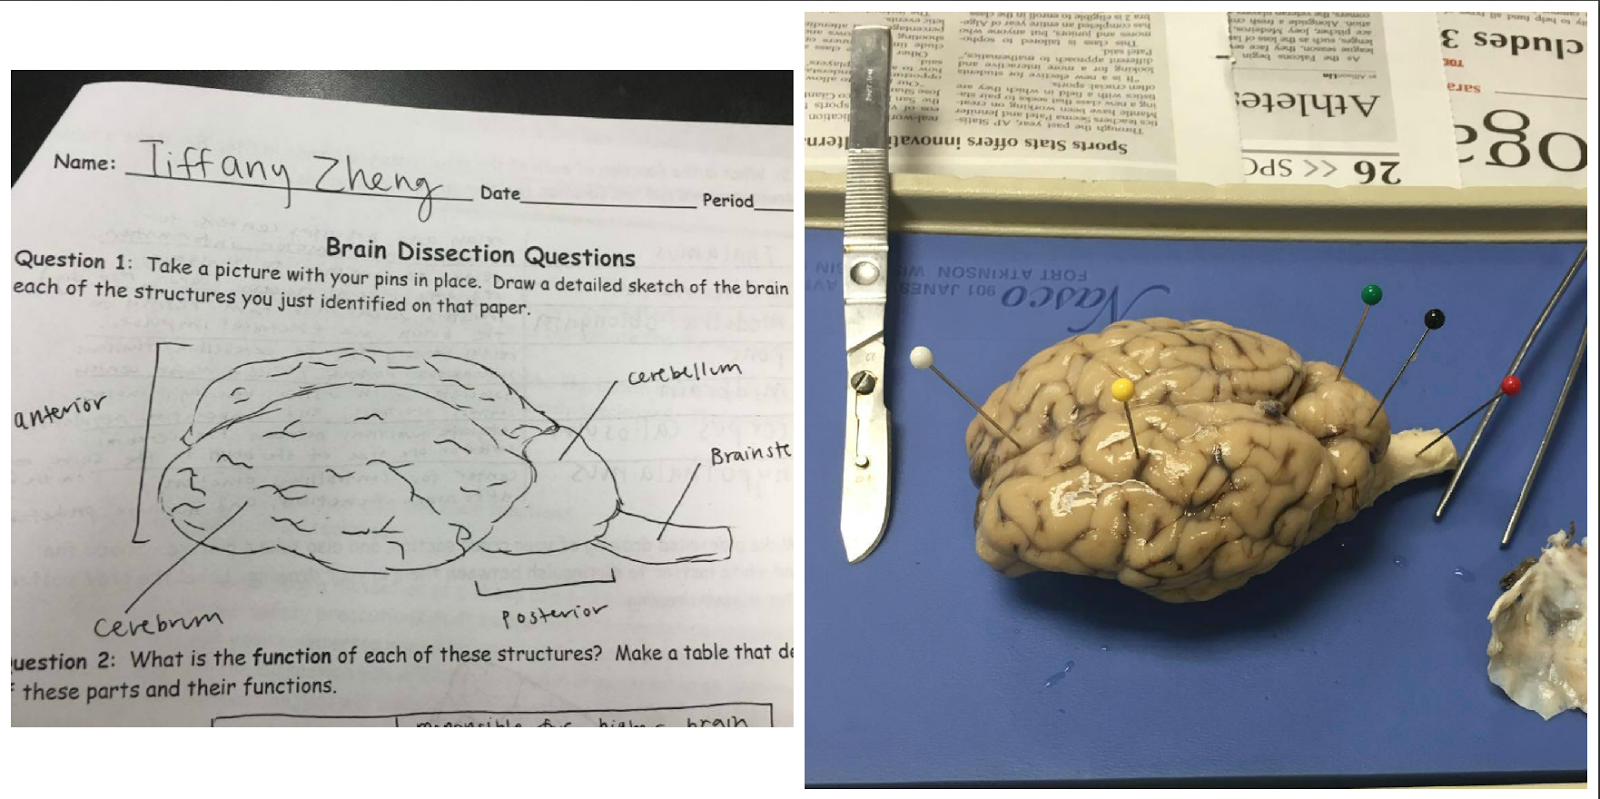 Anatomy And Physiology Brain Dissection Lab Report